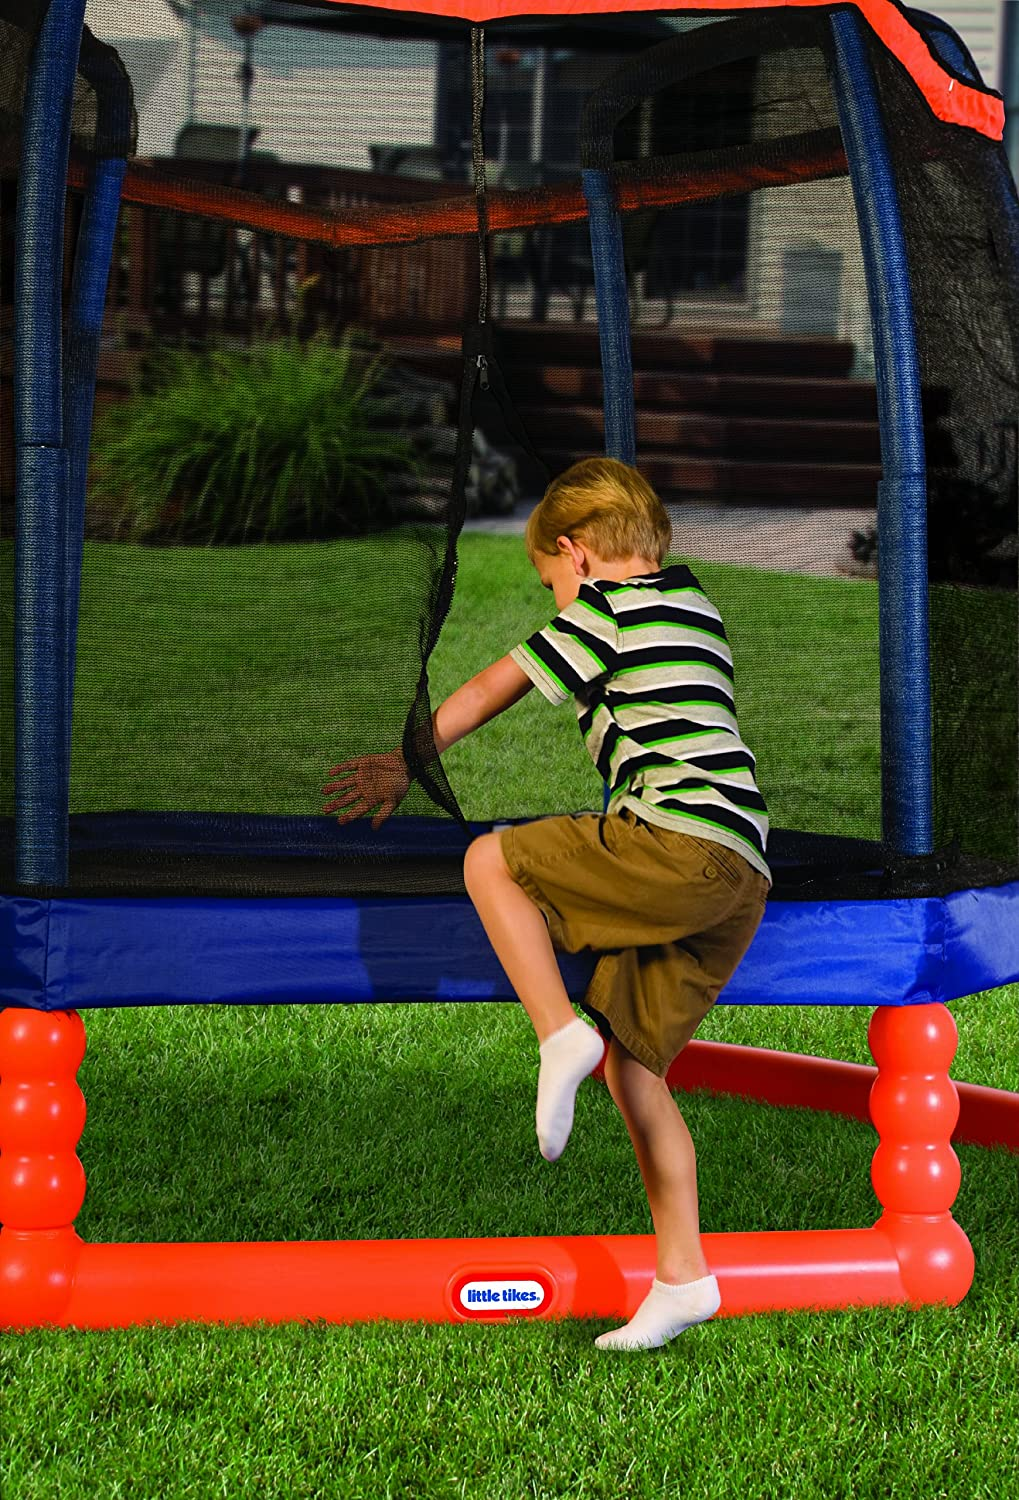 An Image of Little Tikes 7' Trampoline